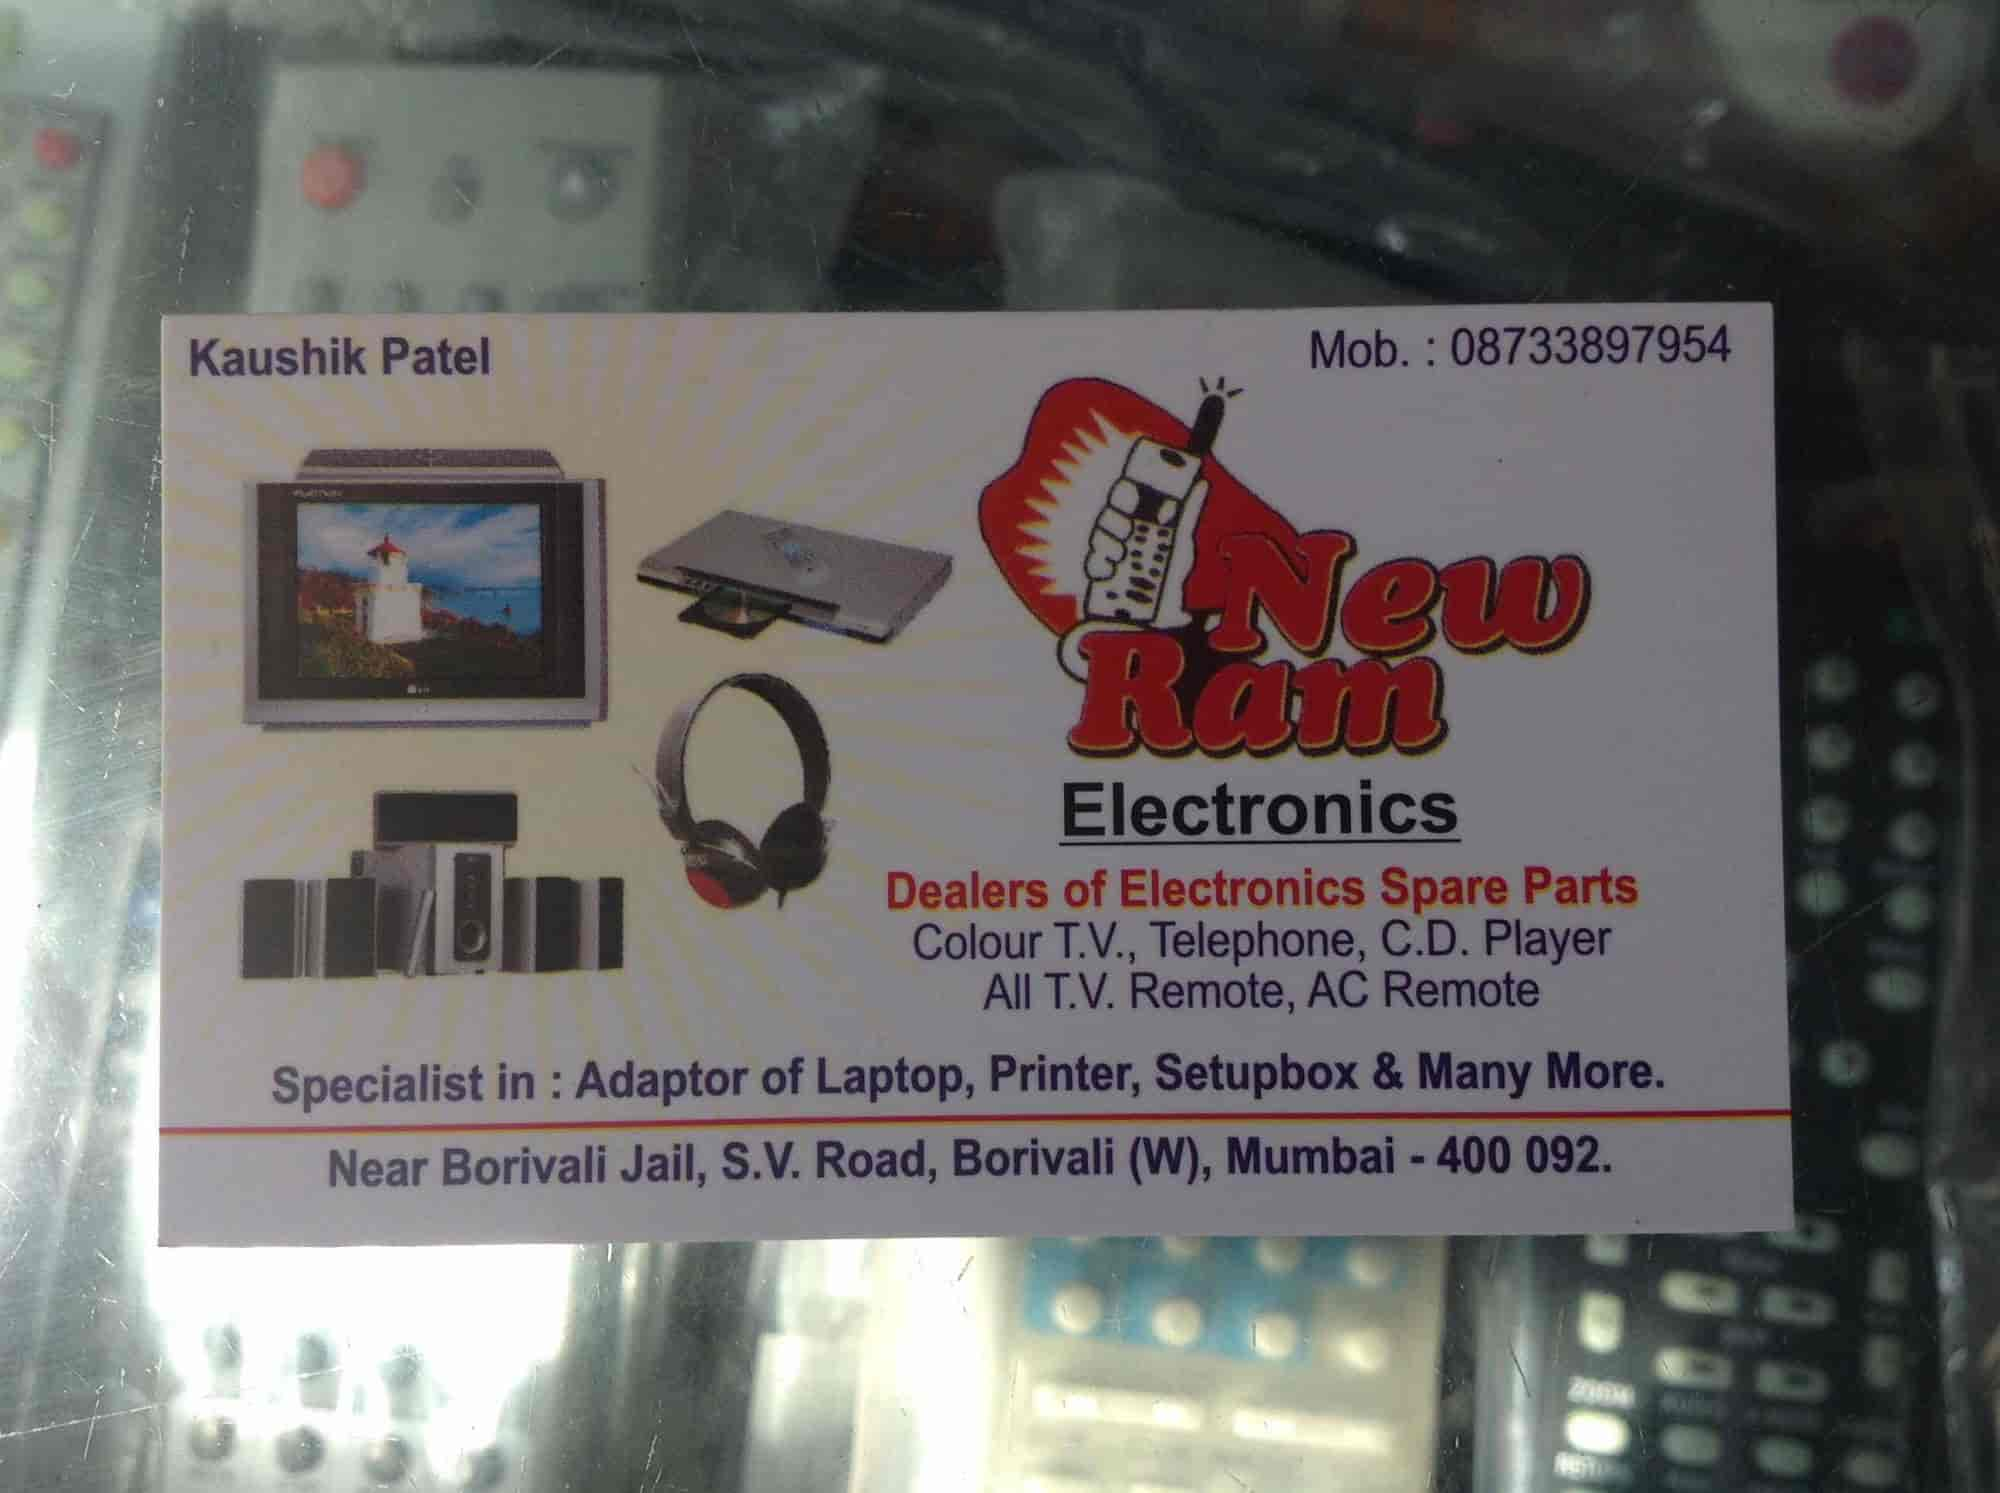 New Ram Electronics Borivali West Cable Wire Dealers In Mumbai Justdial